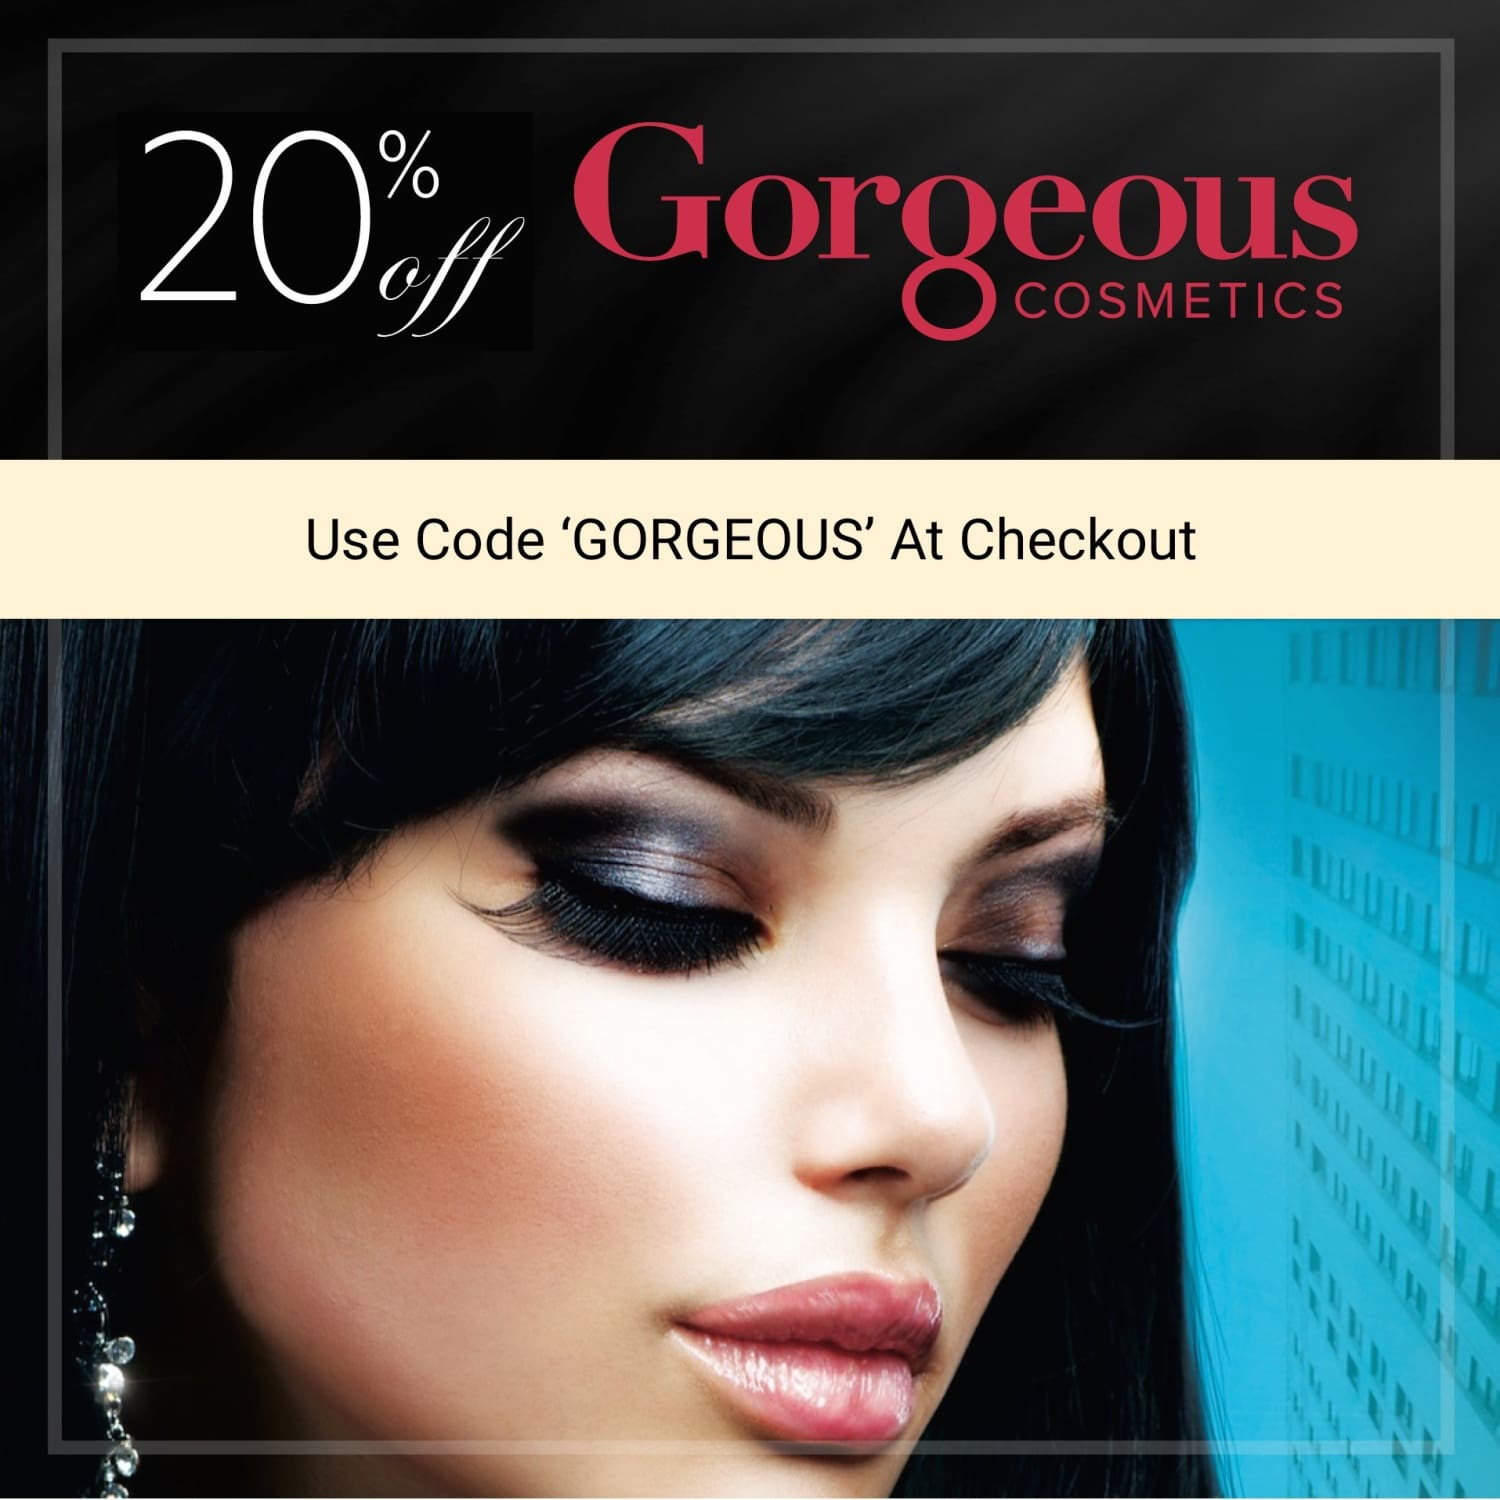 gorgeous cosmetics 20% off sale